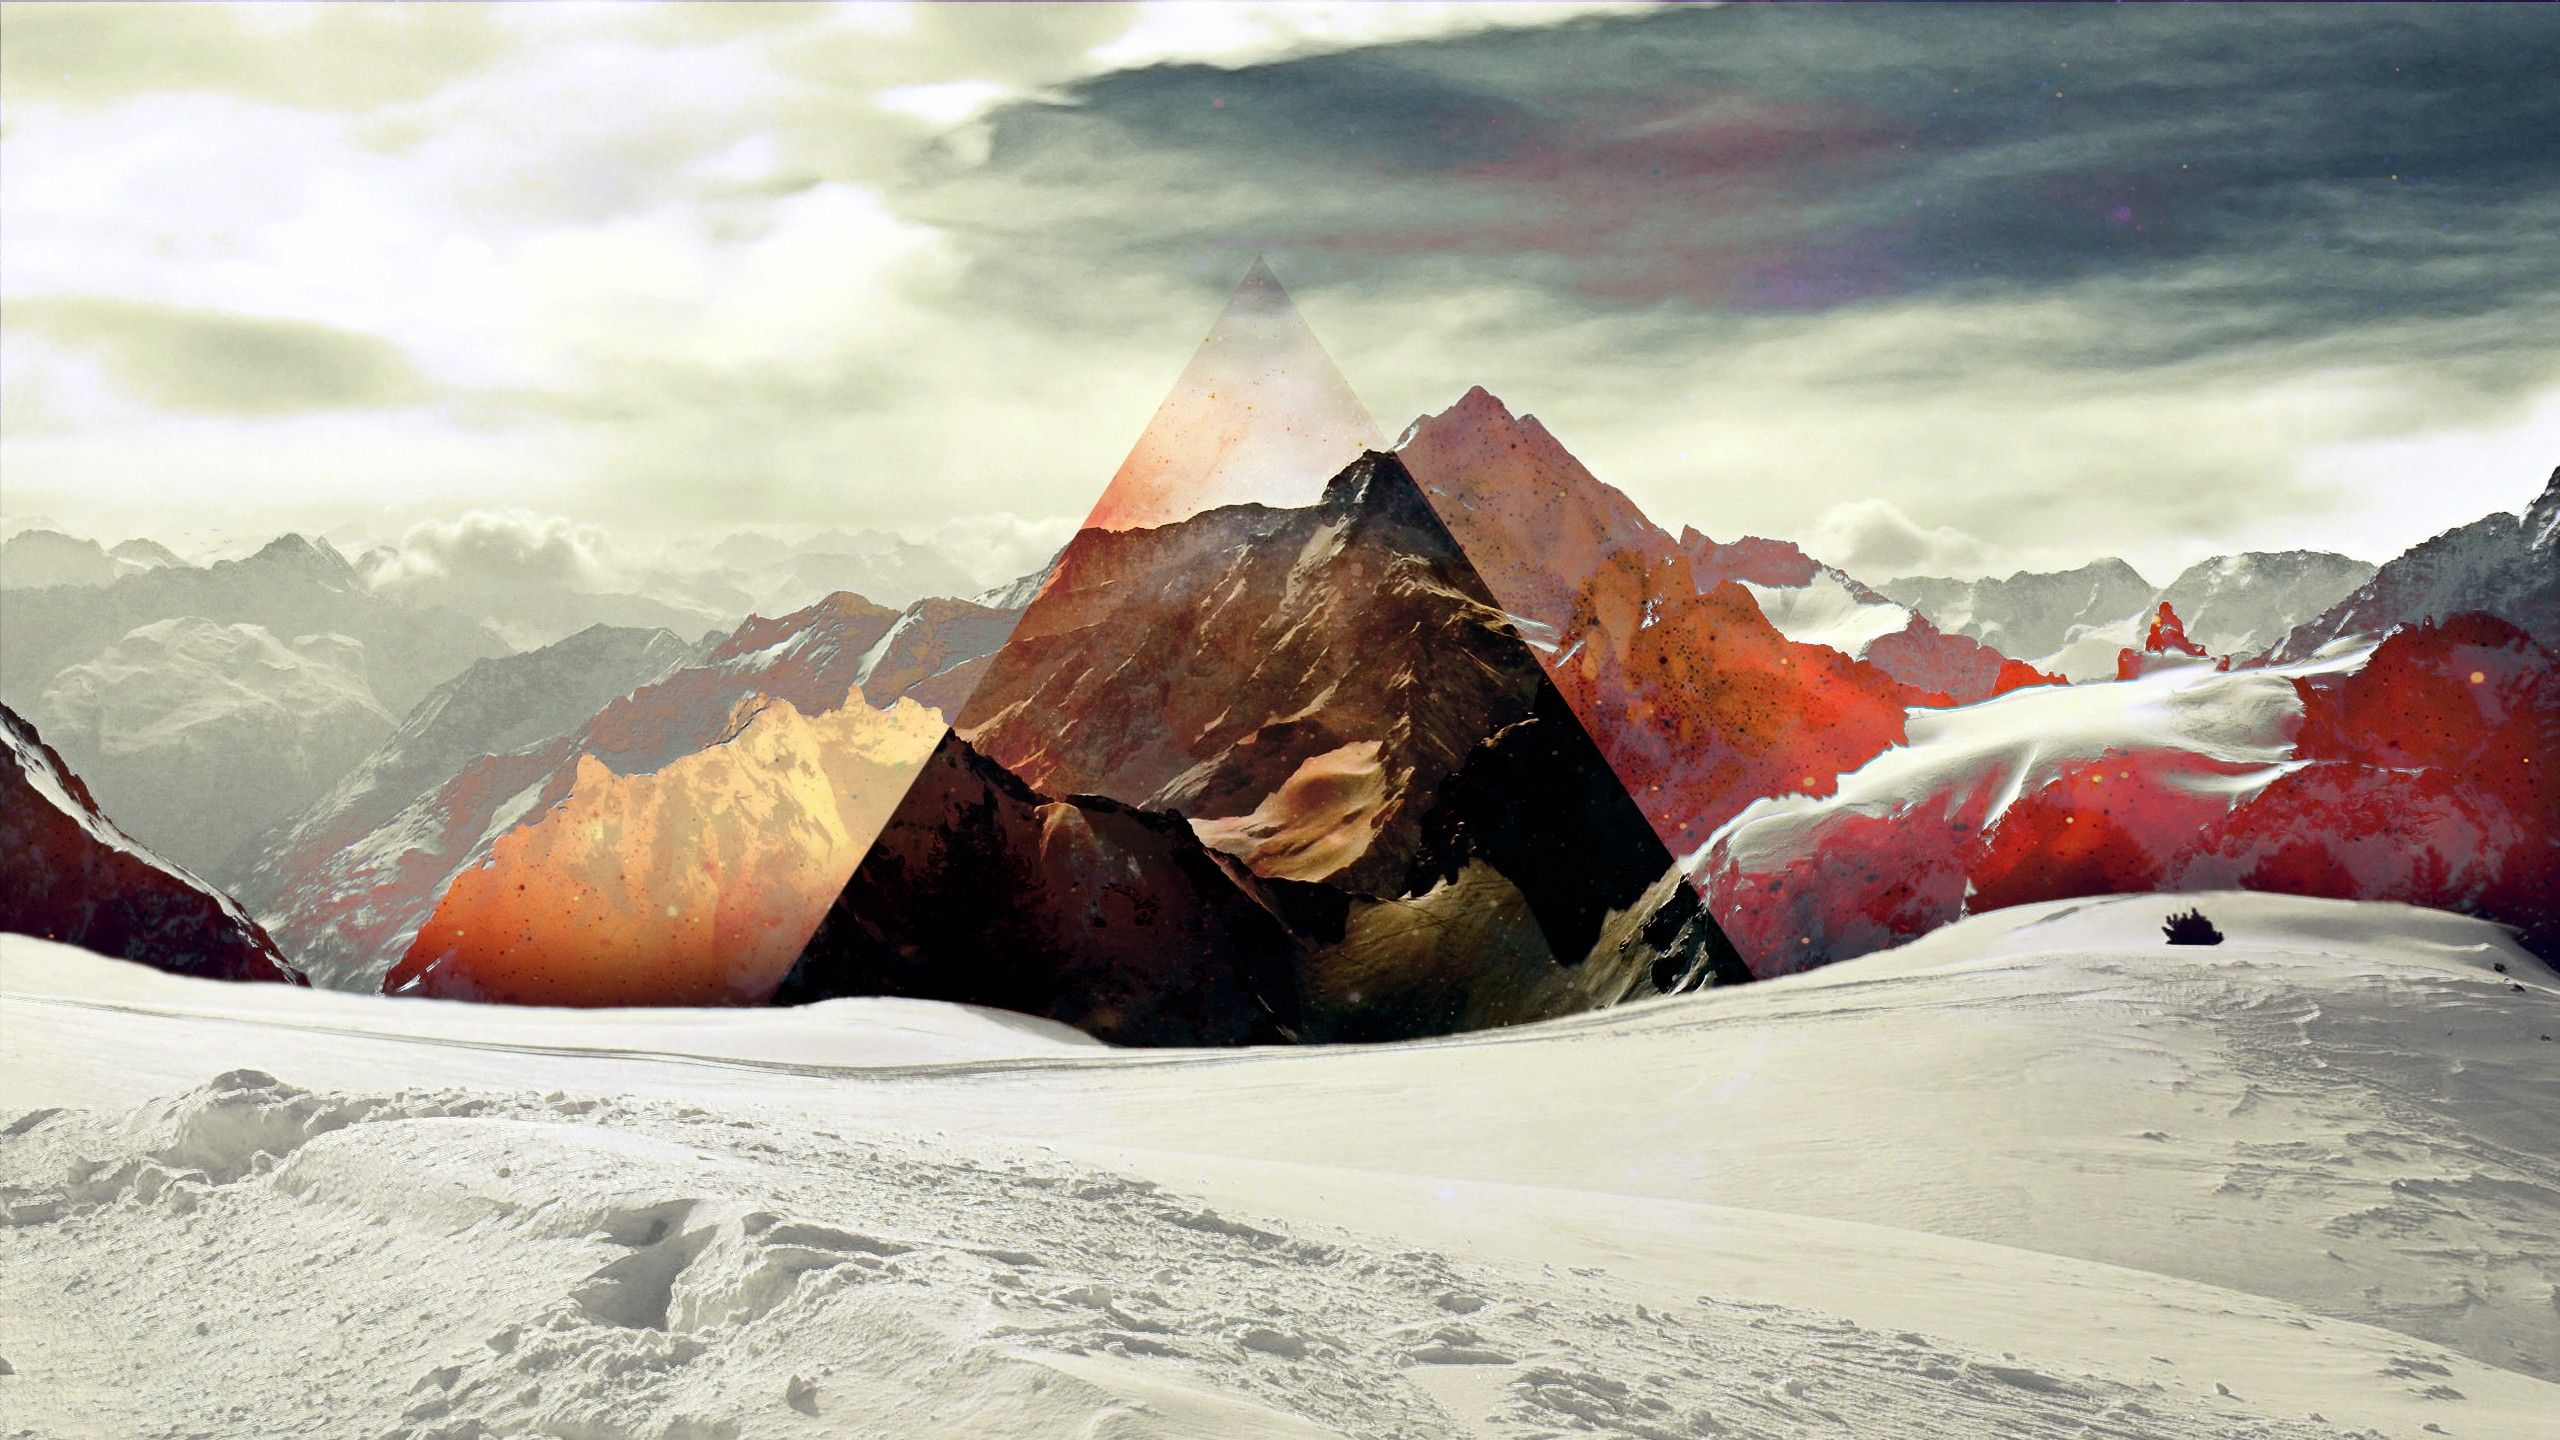 Triangle Snow Abstract mountains sky wallpaper 2560x1440